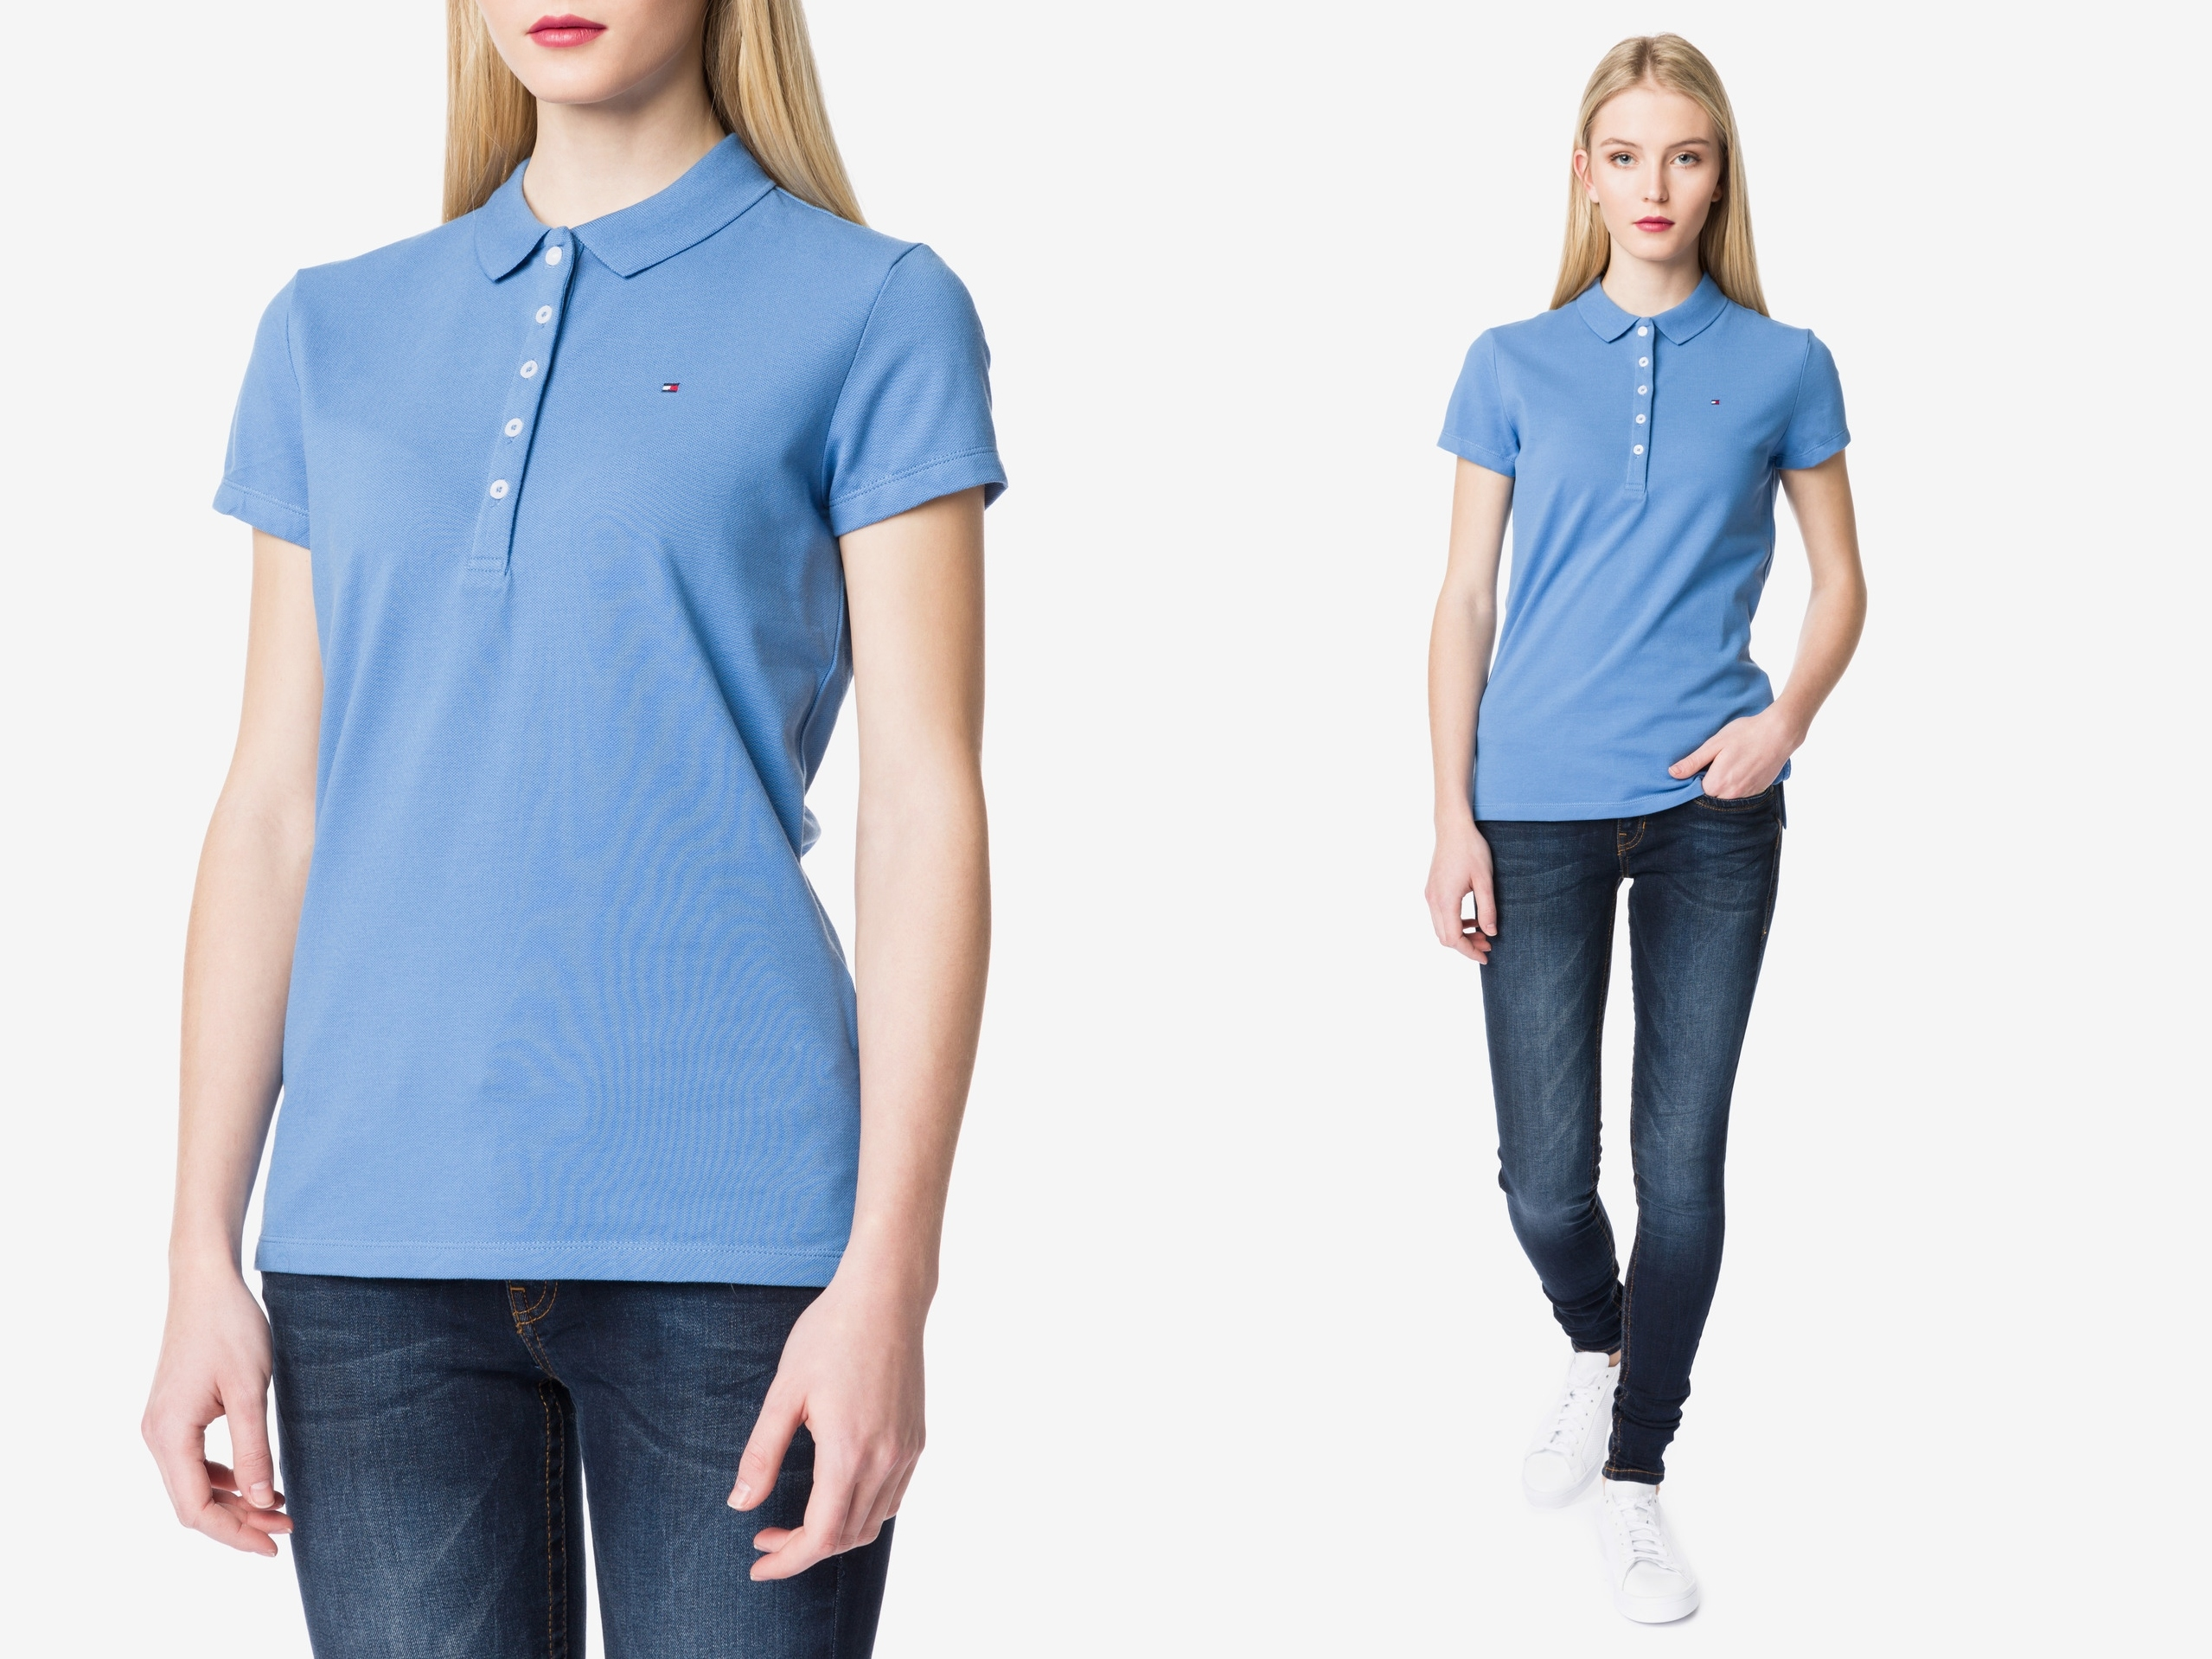 Tommy Hilfiger New Chiara Koszulka Polo Slim fit M